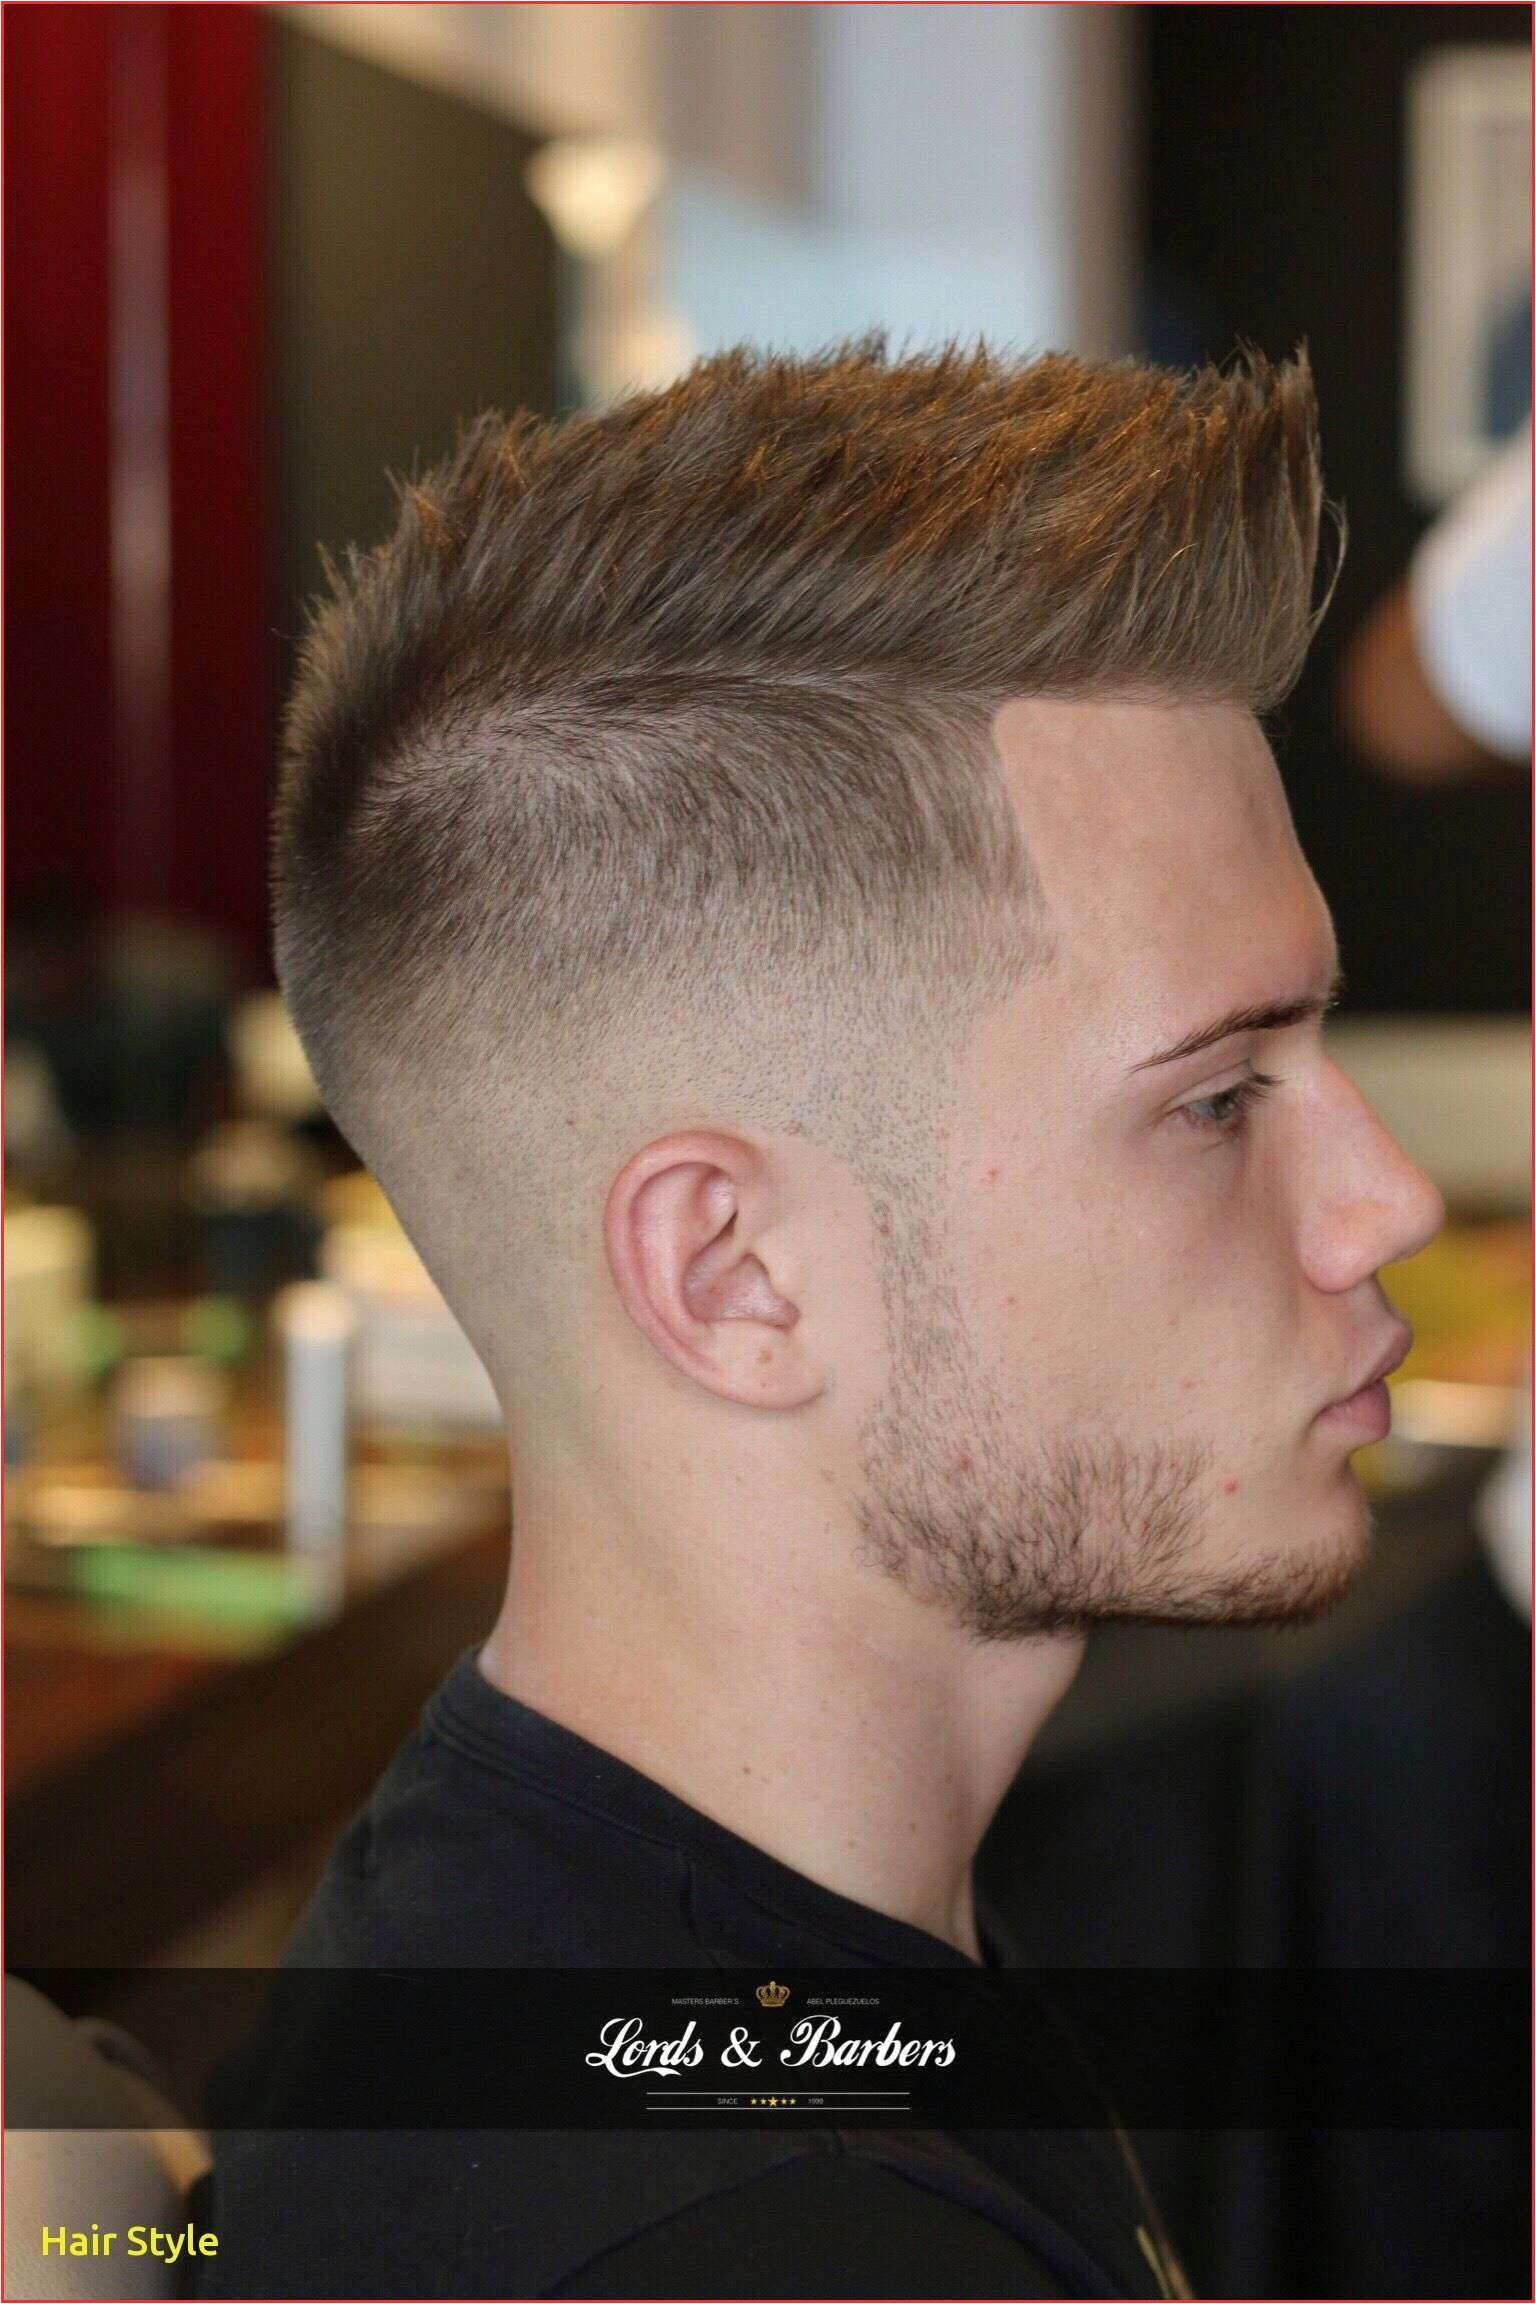 Mens Haircuts 2019 Inspirational Temp Fade Hairstyles Male Hair Styles Best Hairstyles Men 0d Image